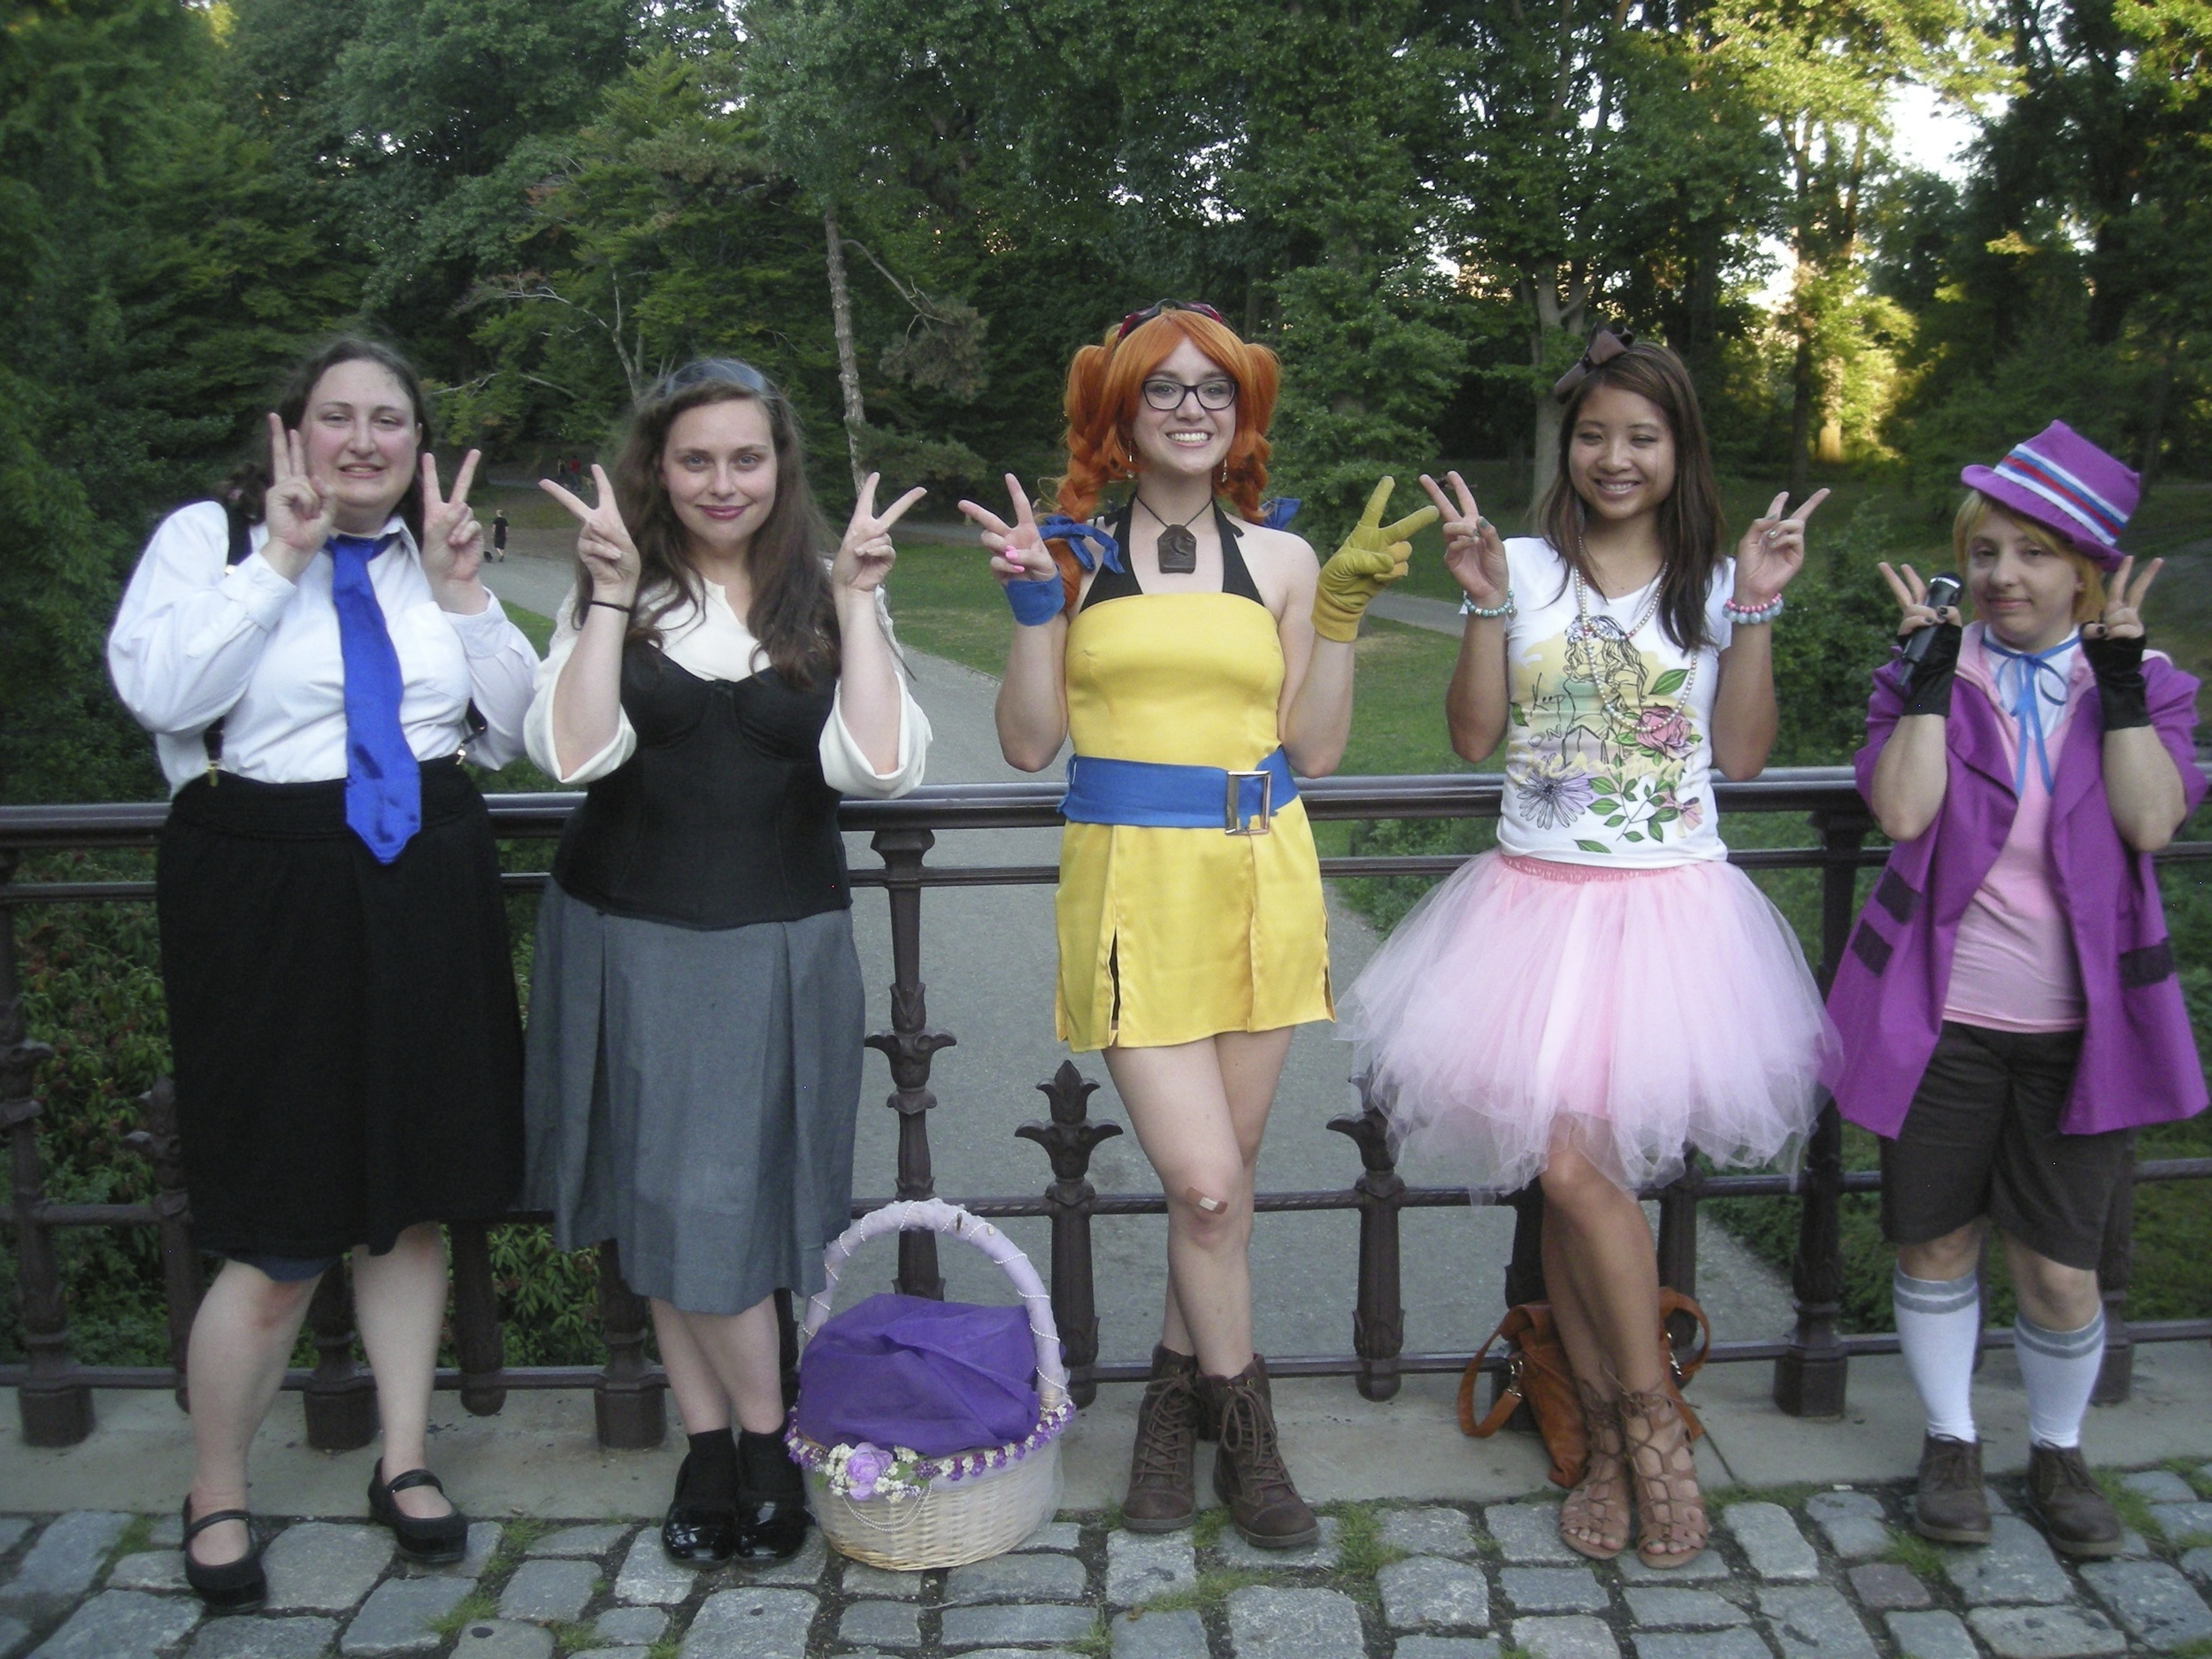 Liz as Aika from Skies of Arcadia, with friends in Central Park in August.